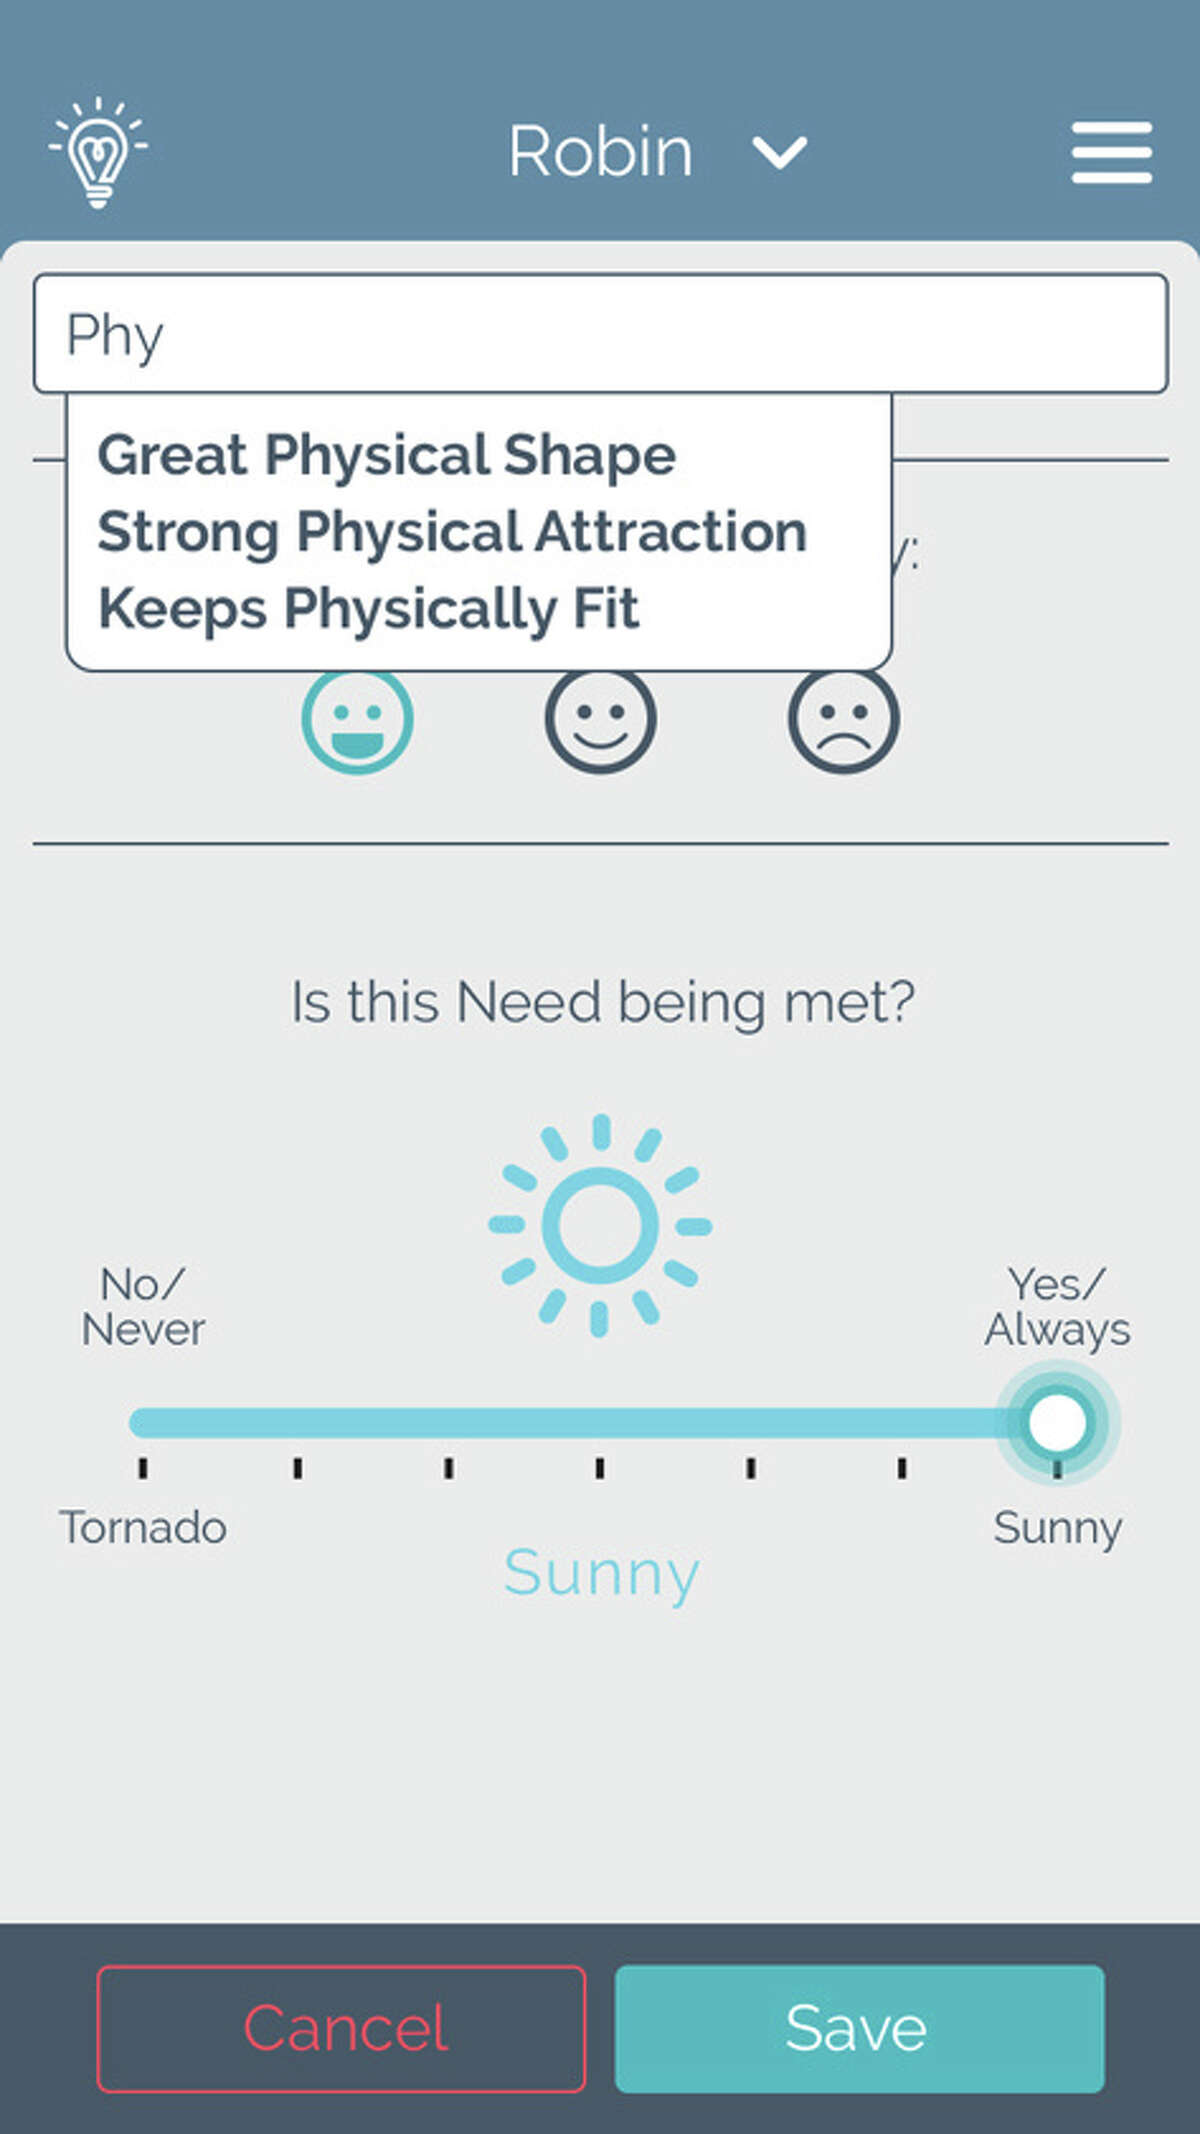 Interface for the Relationship Barometer app, created by Michael Gabriel of Greenwich. The app allows people to track the success of their relationship by detailing what they want and don't want in a relationship, and monitor how well those needs are being met.